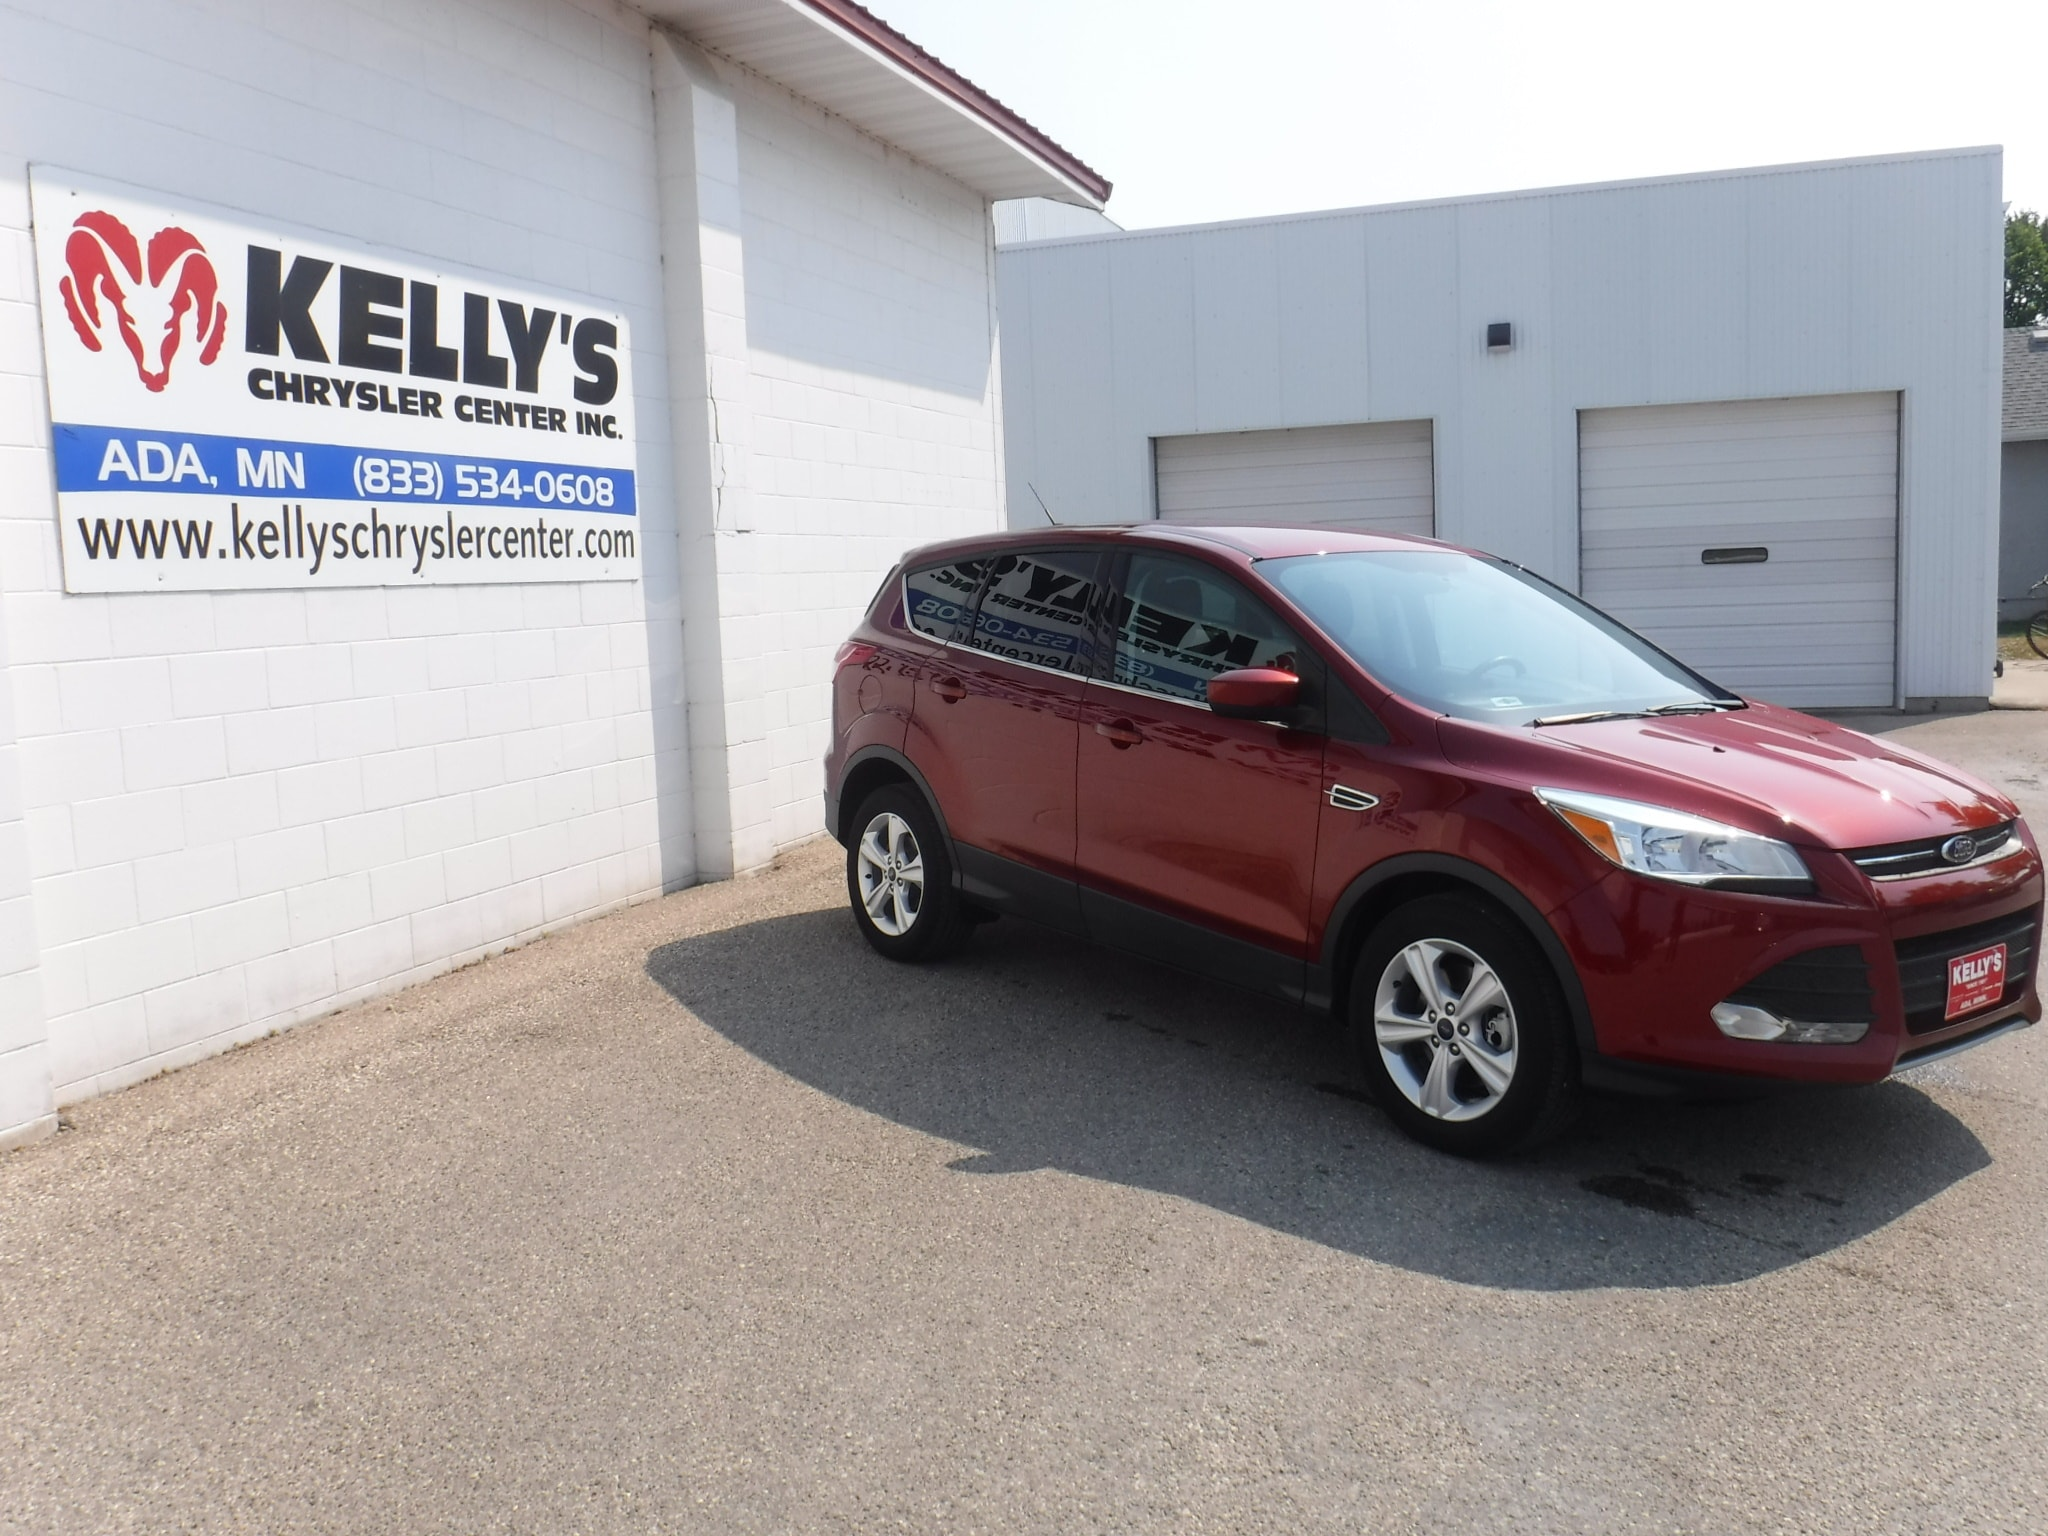 Used 2015 Ford Escape SE with VIN 1FMCU9G96FUA65605 for sale in Ada, Minnesota